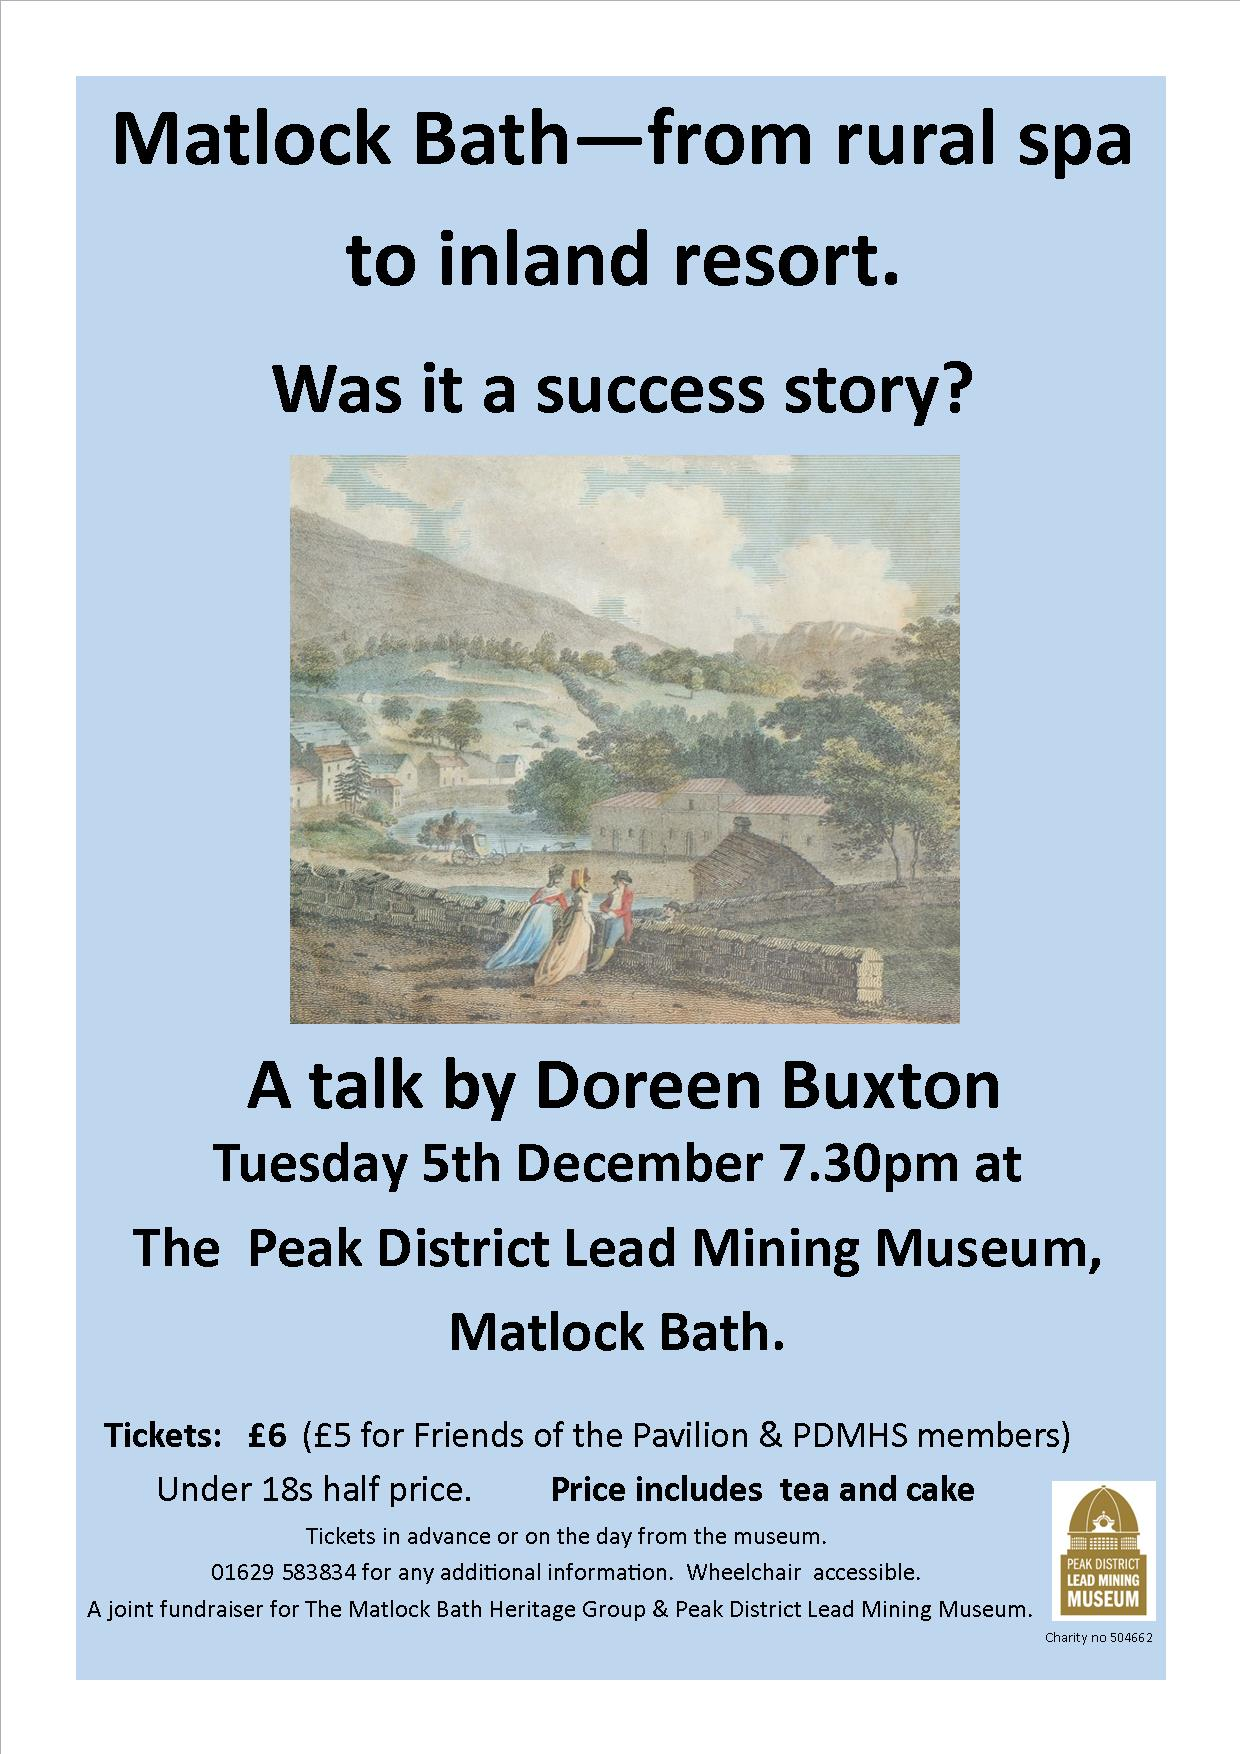 Derbyshire heritage event - Matlock Bath talk Dec 2017